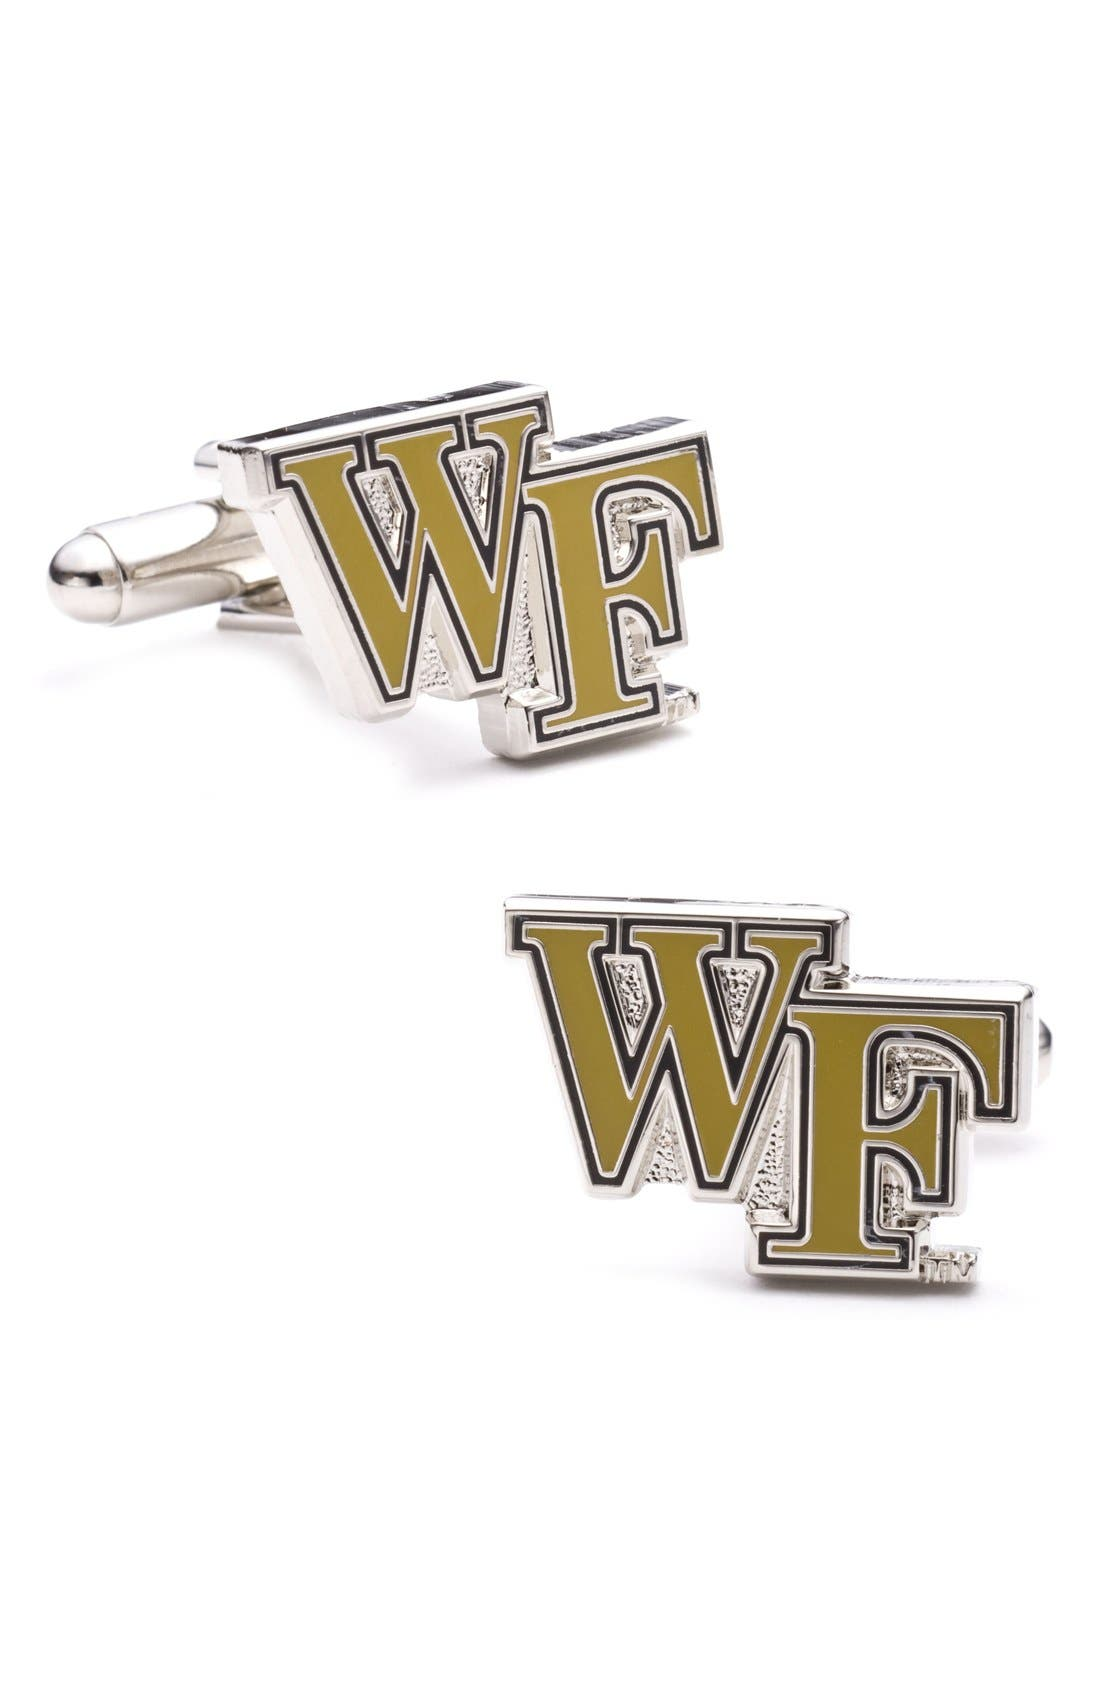 CUFFLINKS, INC. Wake Forest Demon Deacons Cuff Links